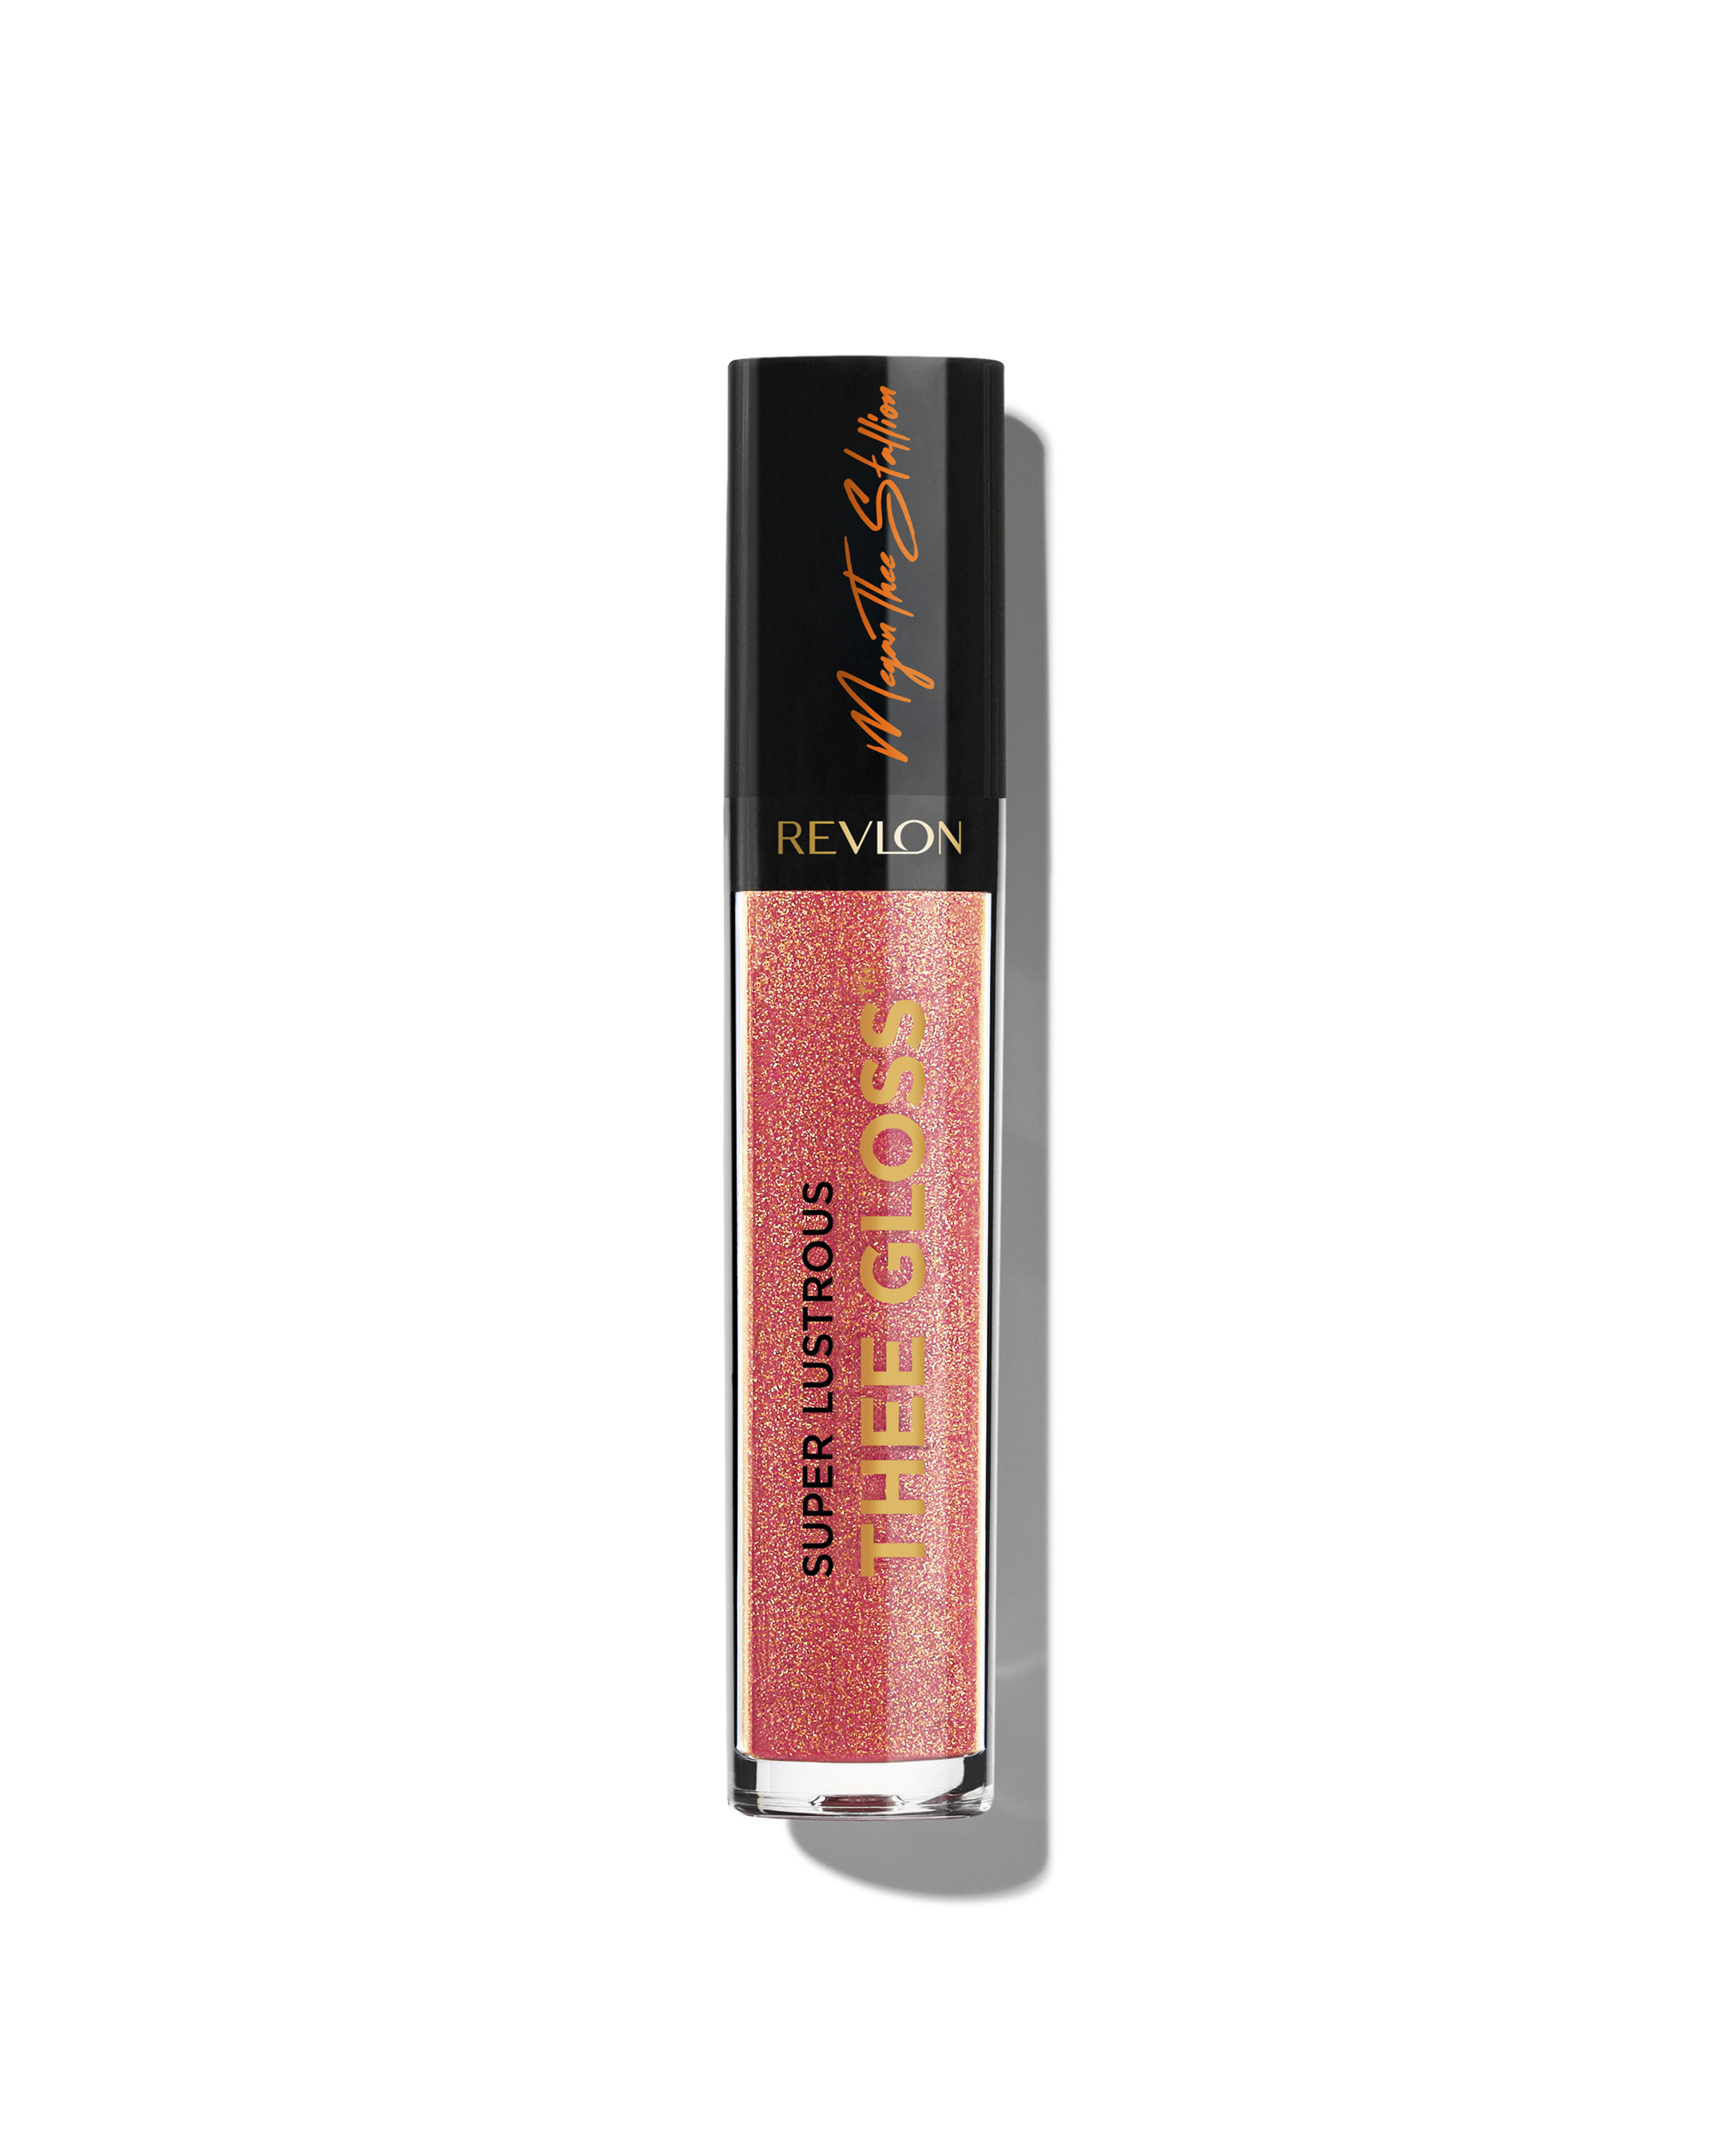 DropX Exclusive Revlon x Megan Thee Stallion Hot Girl Sunset SL-Thee Gloss Blissed Out